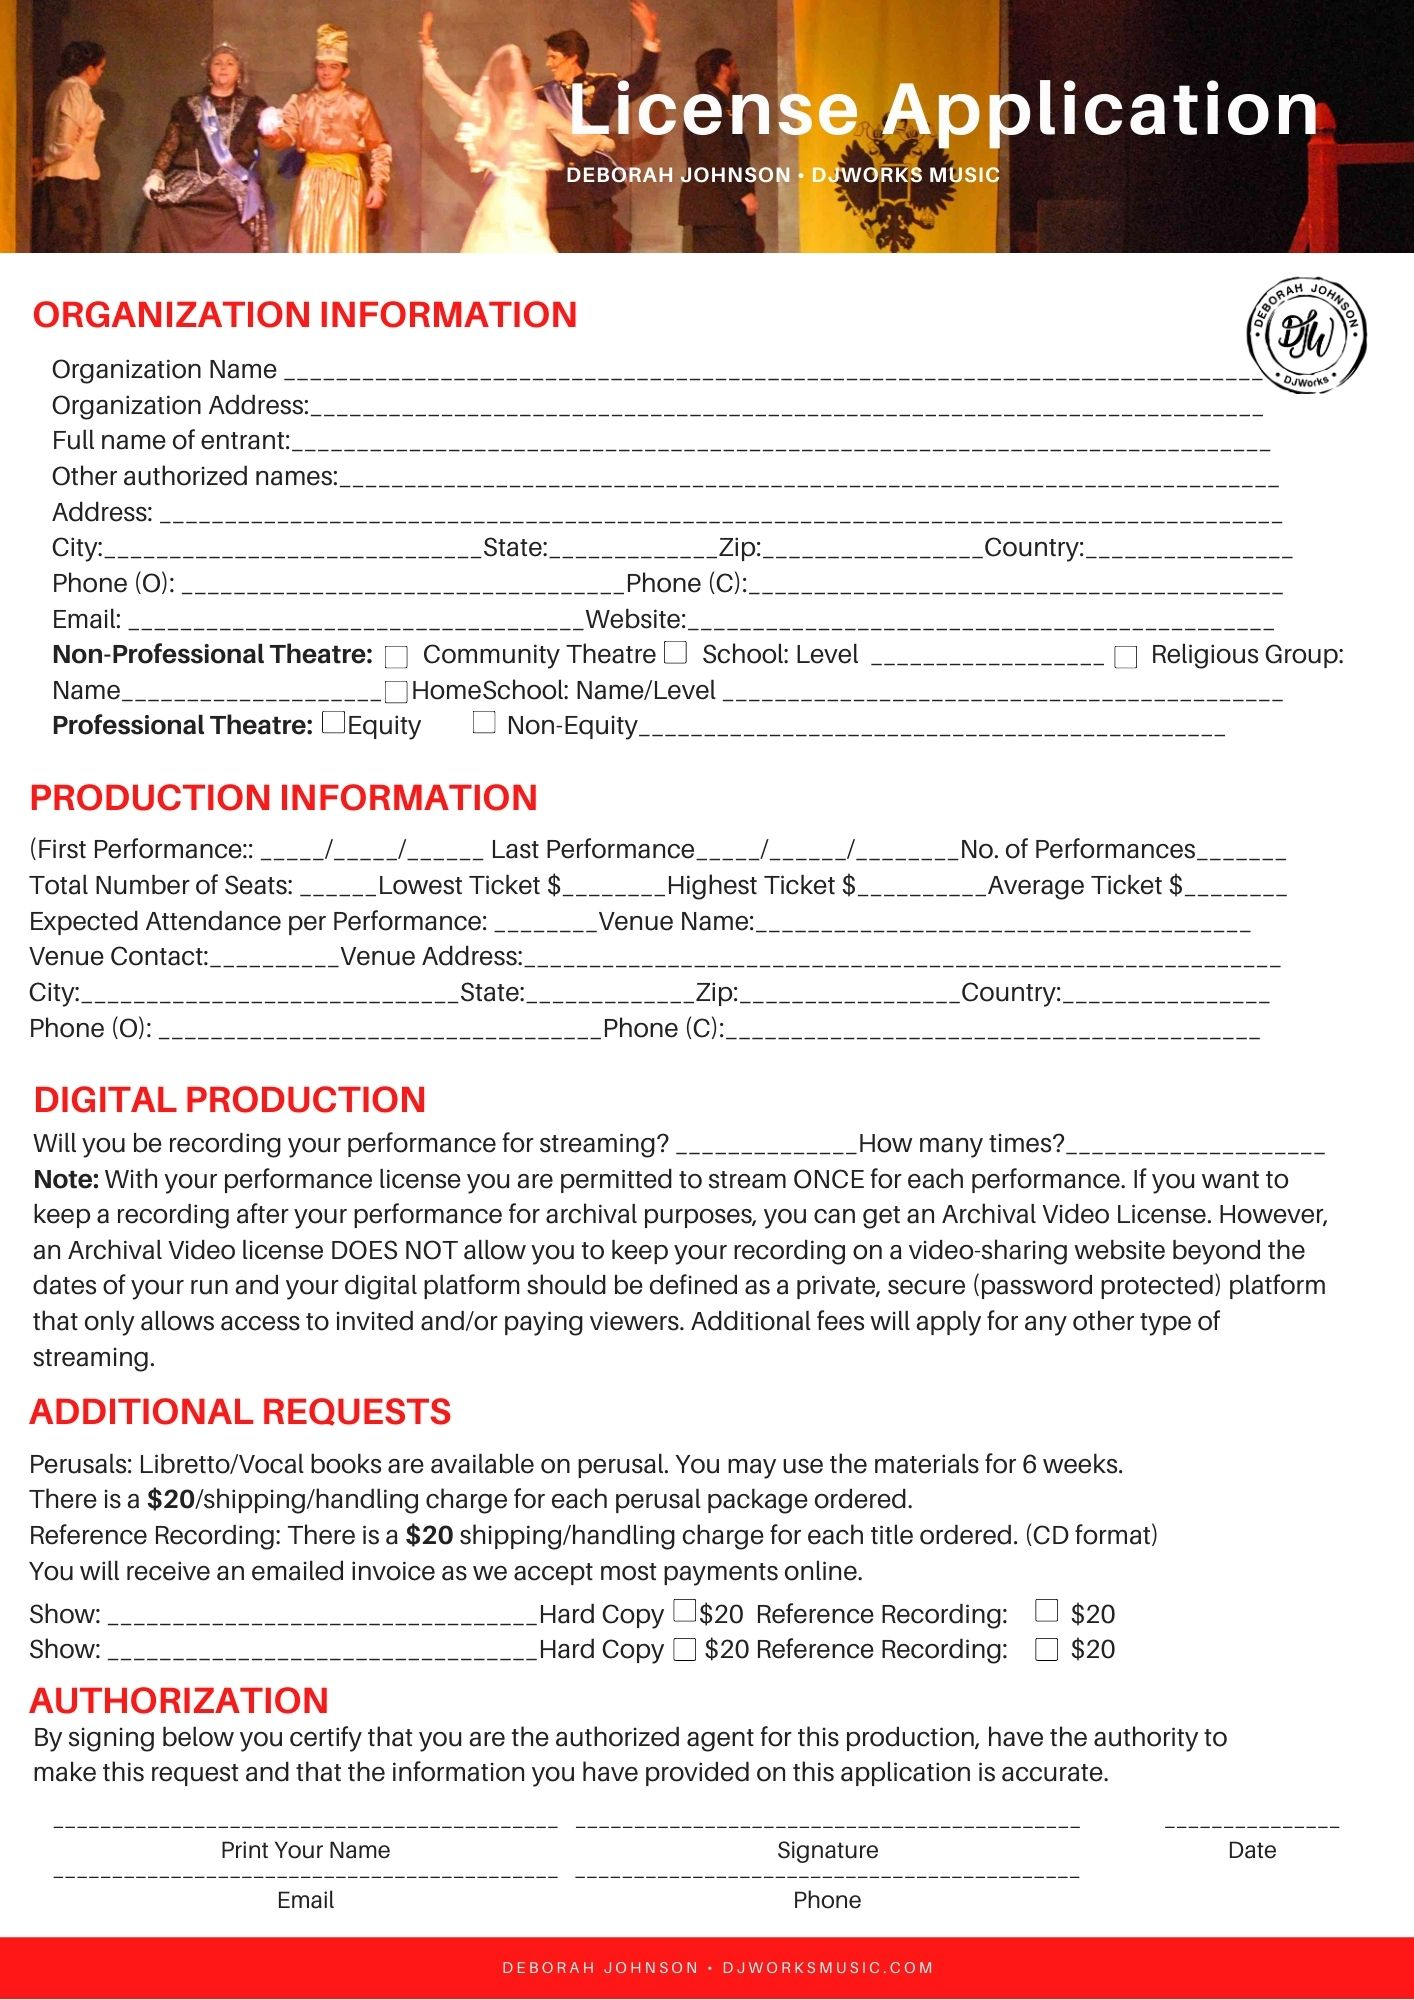 Musical License Form DJWorksMusic